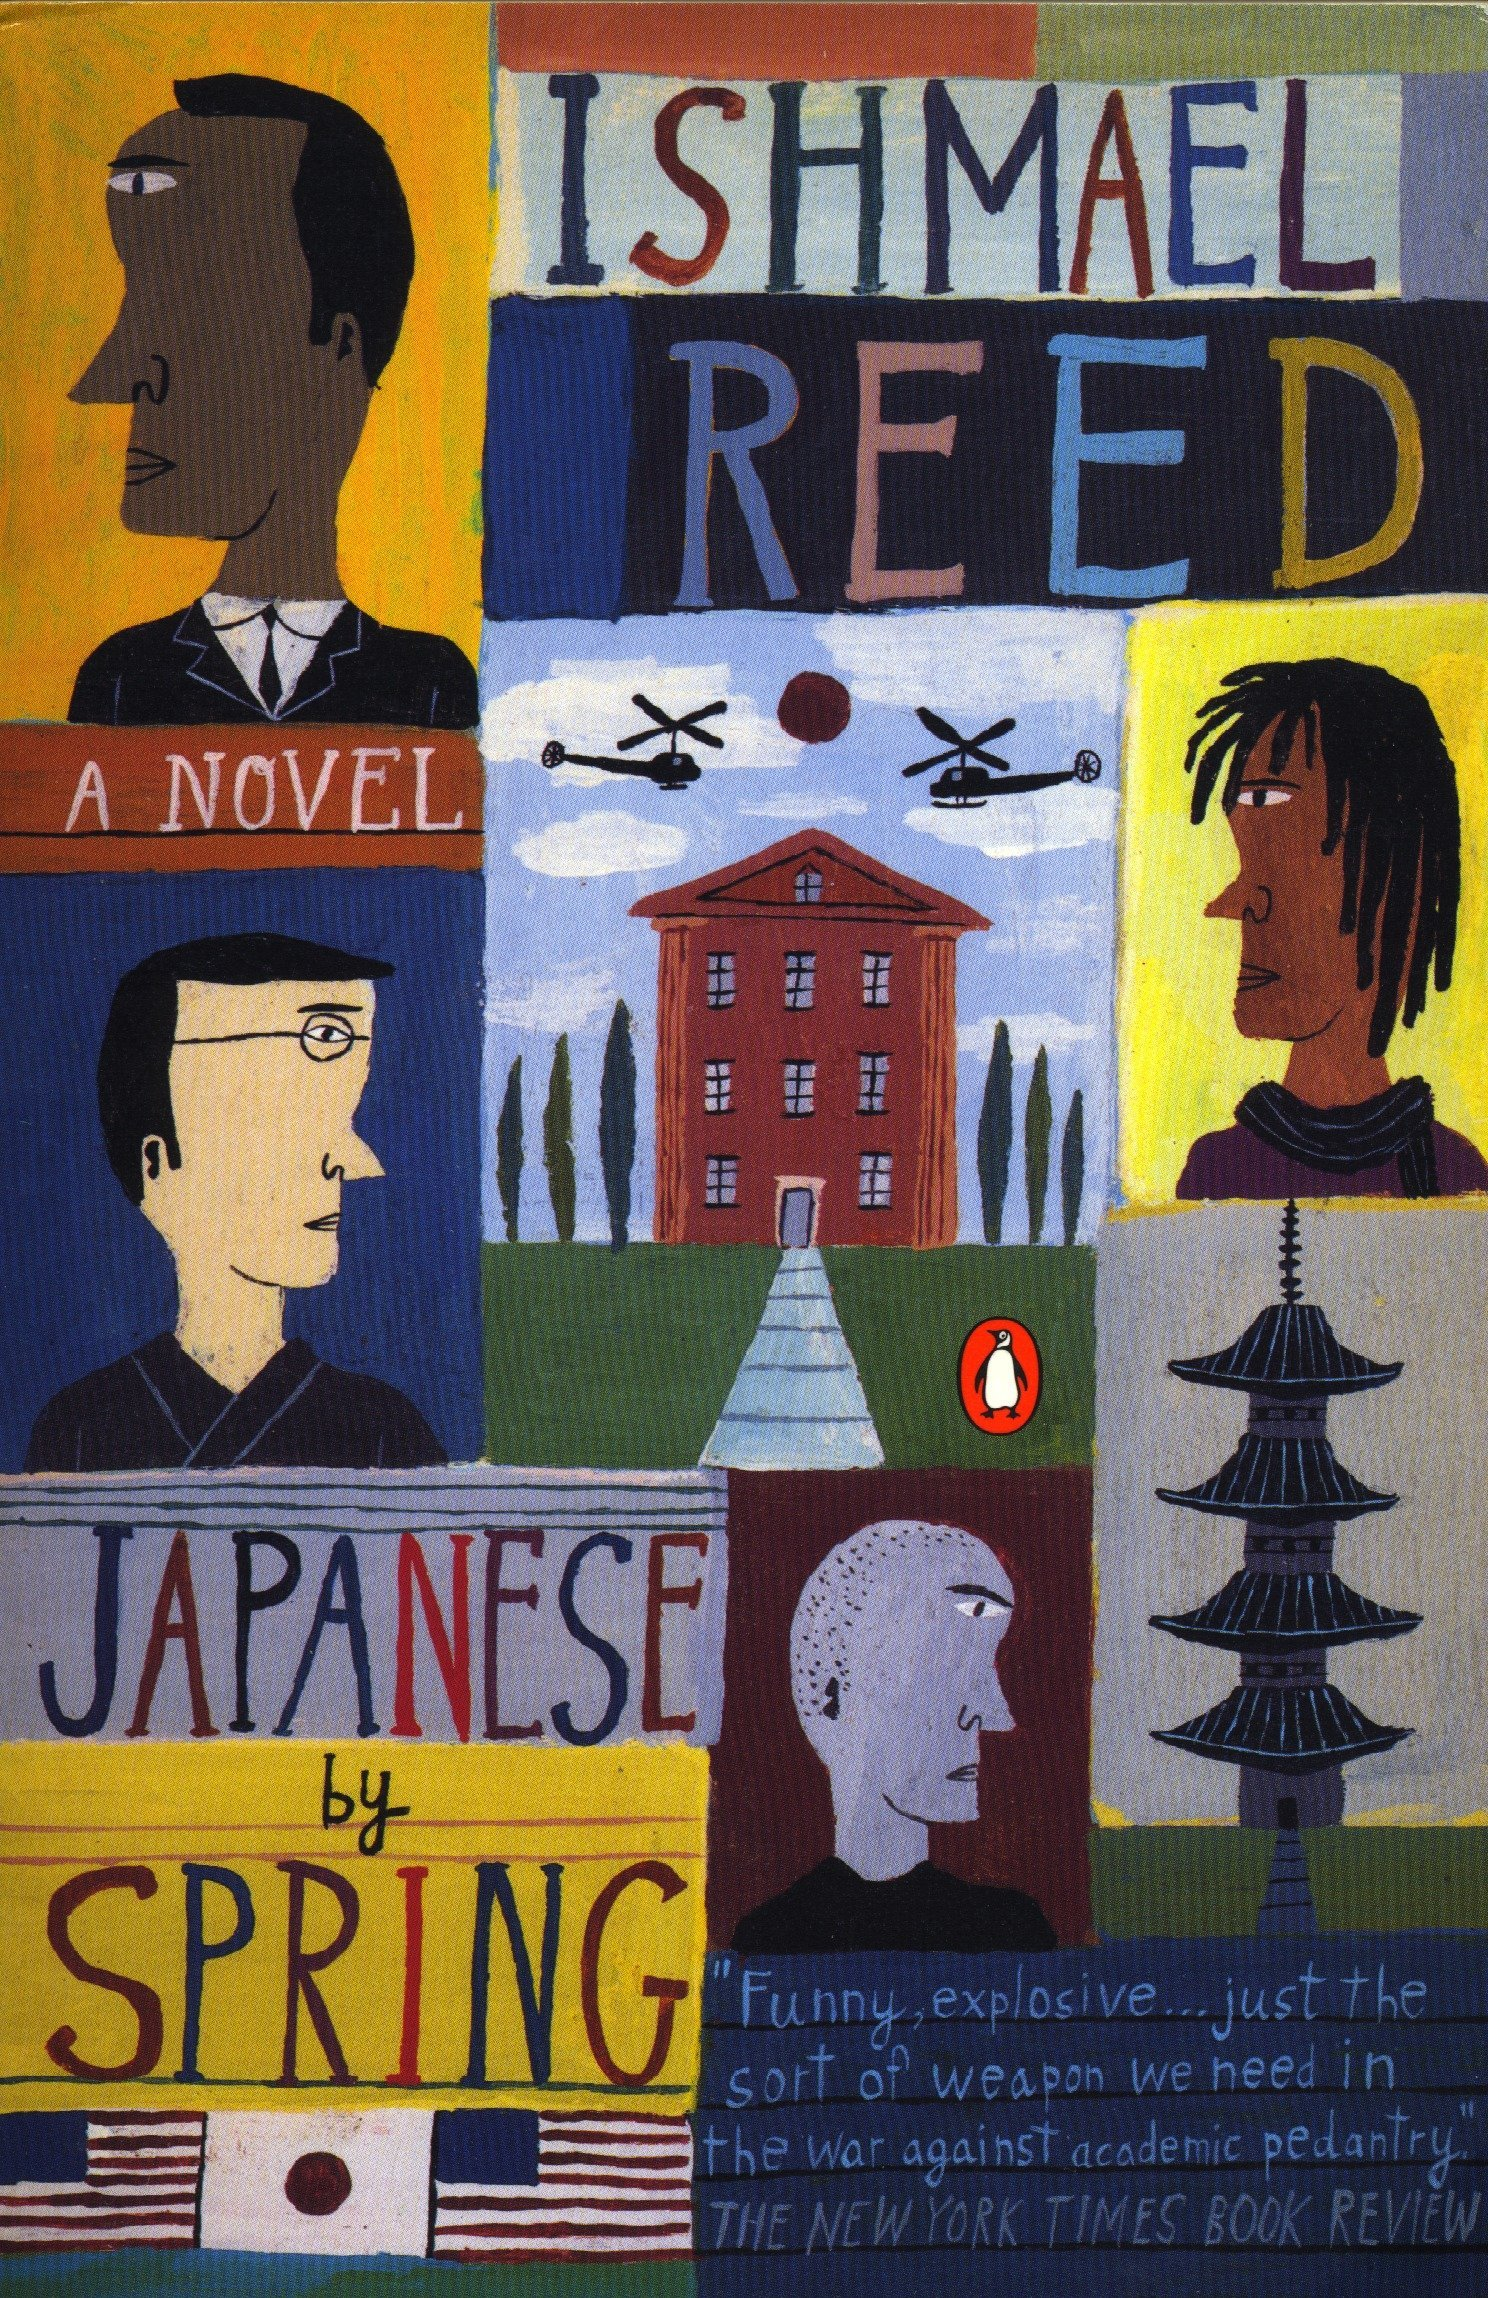 Amazon.com: Japanese by Spring (9780140255850): Reed, Ishmael: Books